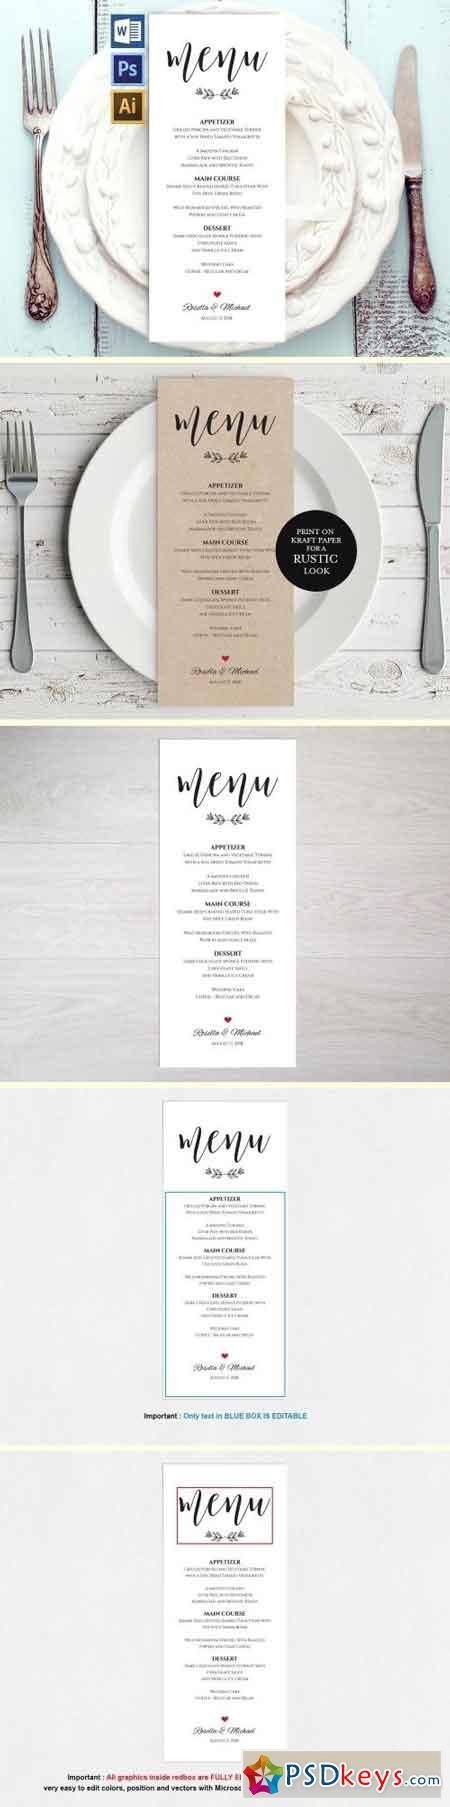 Wedding Menu Template Wpc 127 1550249